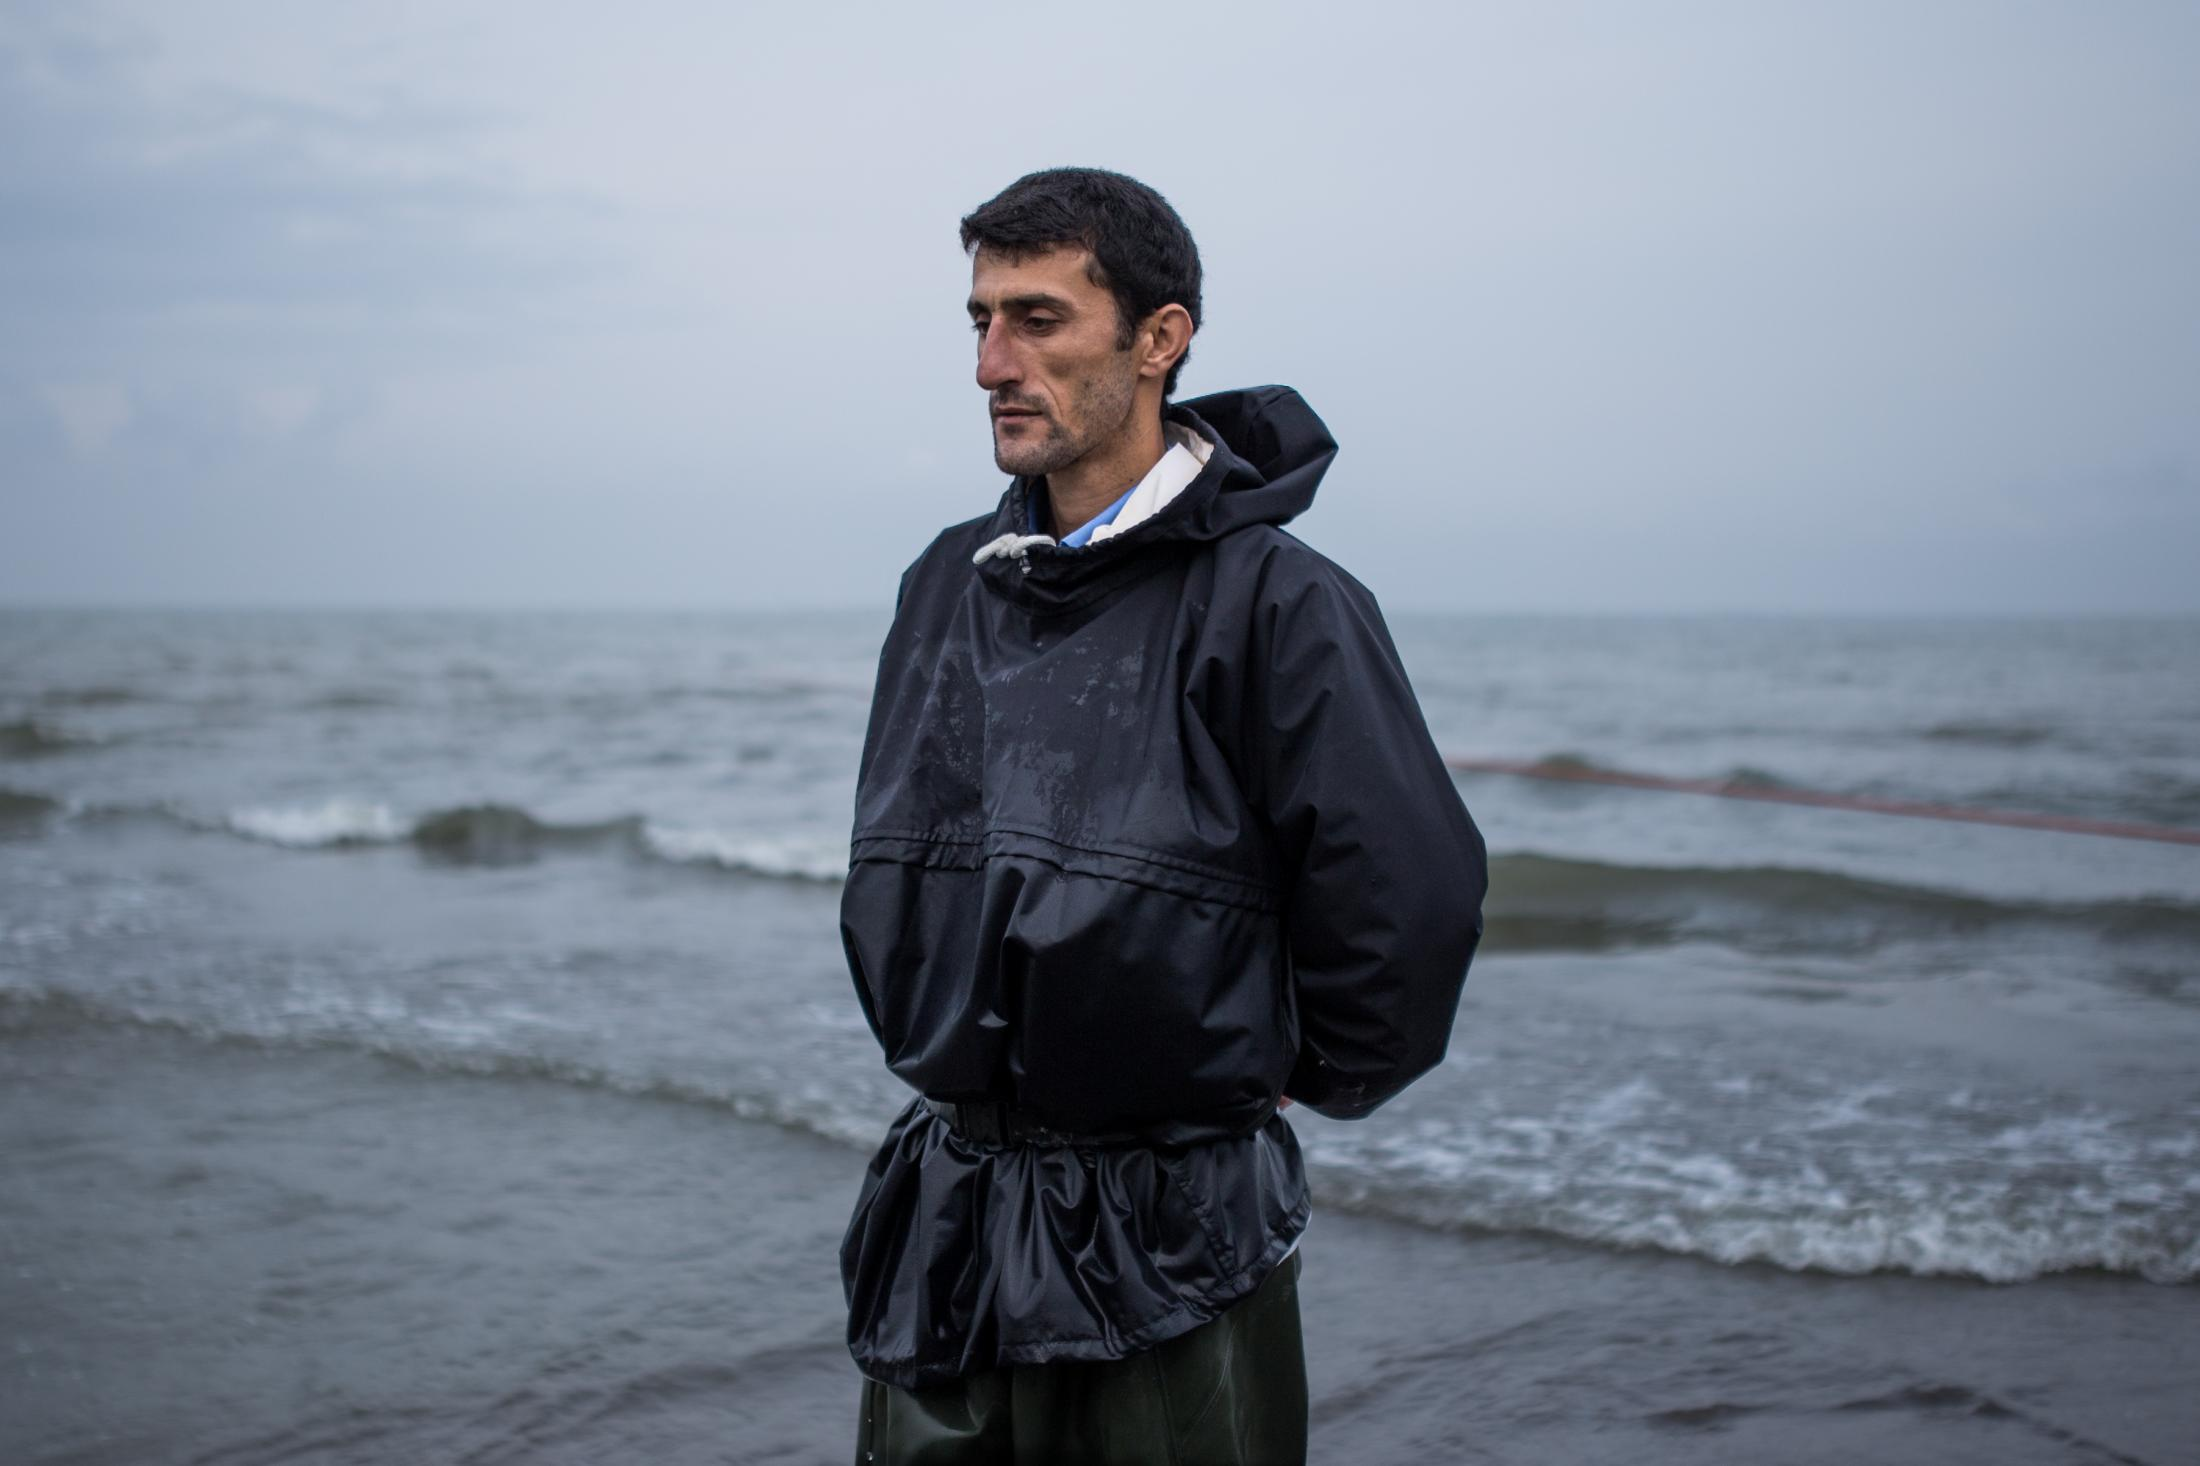 Mohsen, 38 years old, is working in a cooperative in Anzali. He believes that fish do not live naturally in the sea anymore, and if the Fisheries Organization does not release fish fries into the sea every year in early summer, they will no longer have fish to fish.